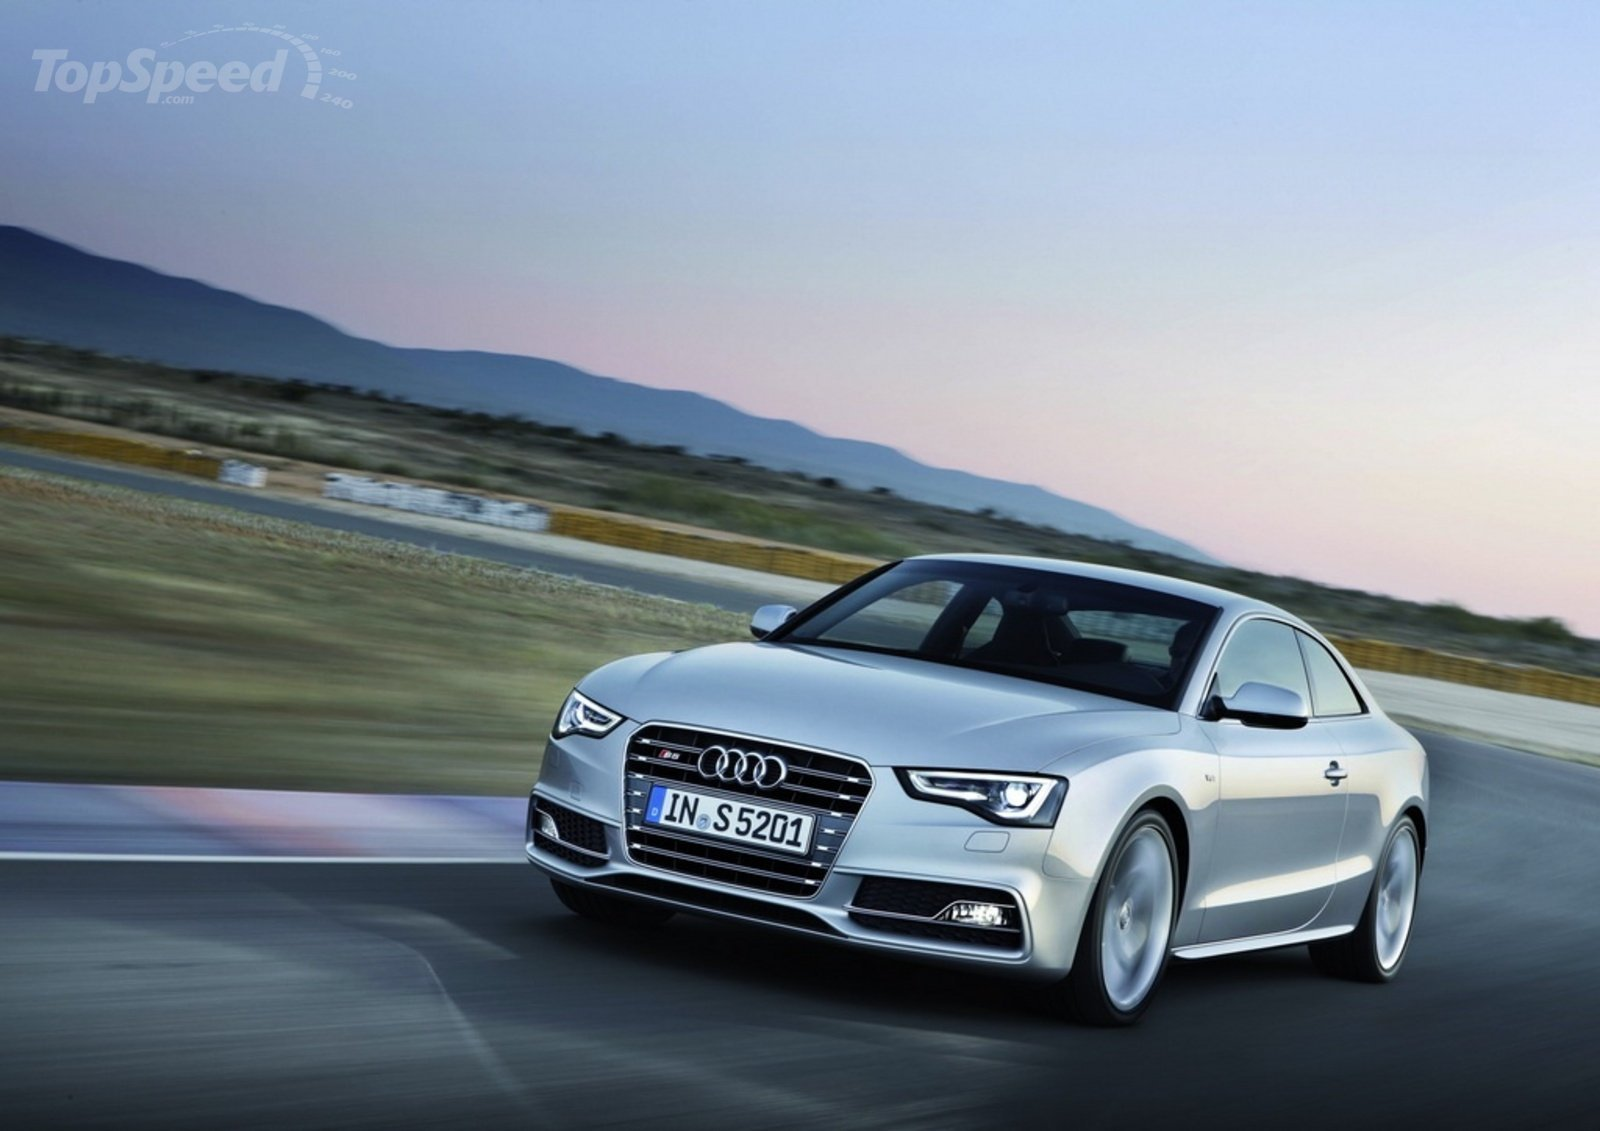 2012 audi s5 coupe review top speed. Black Bedroom Furniture Sets. Home Design Ideas